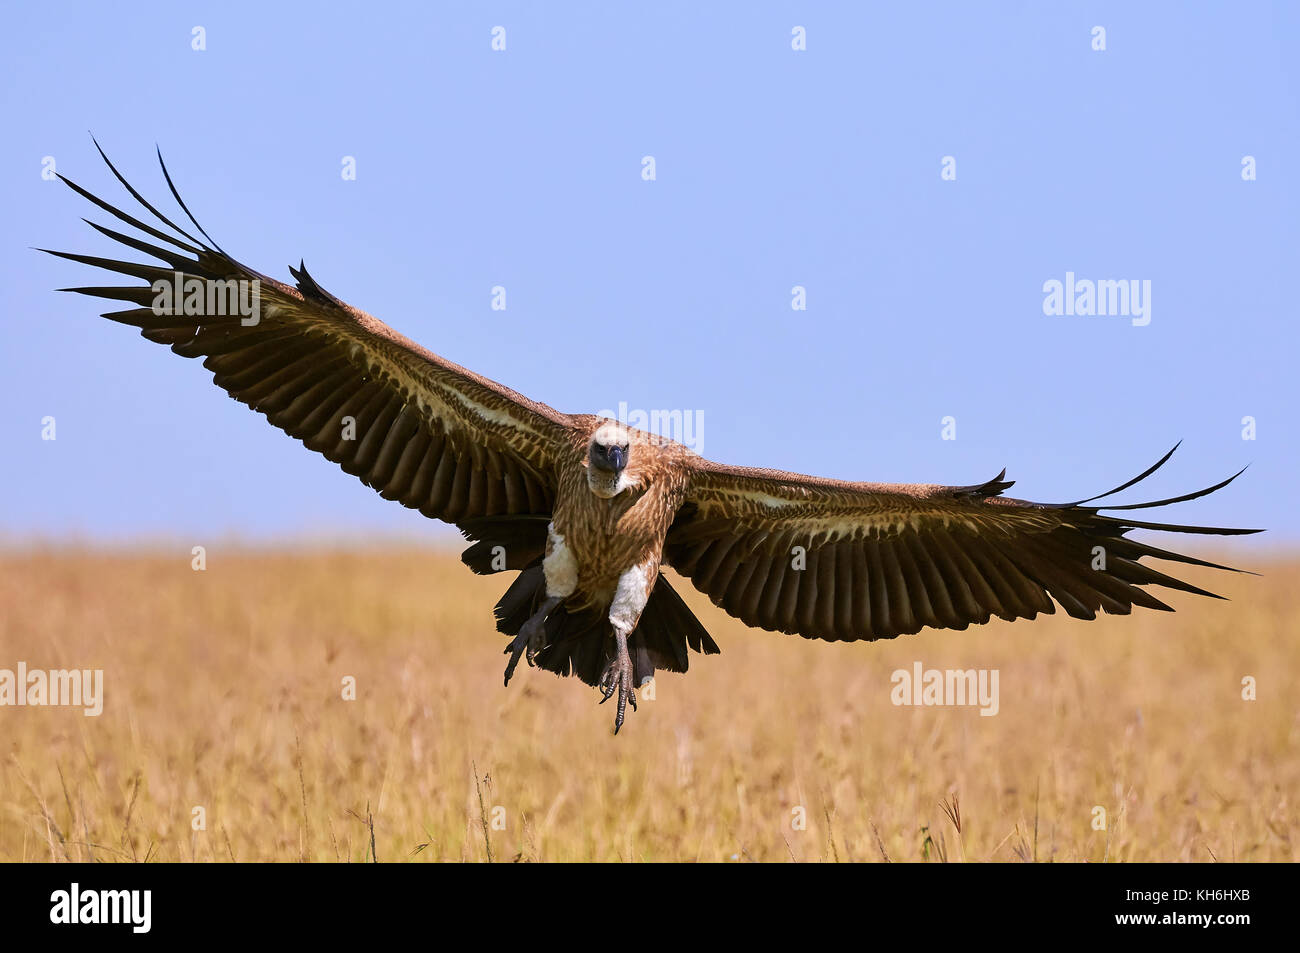 White backed vulture in landing photographed in Kenya - Stock Image